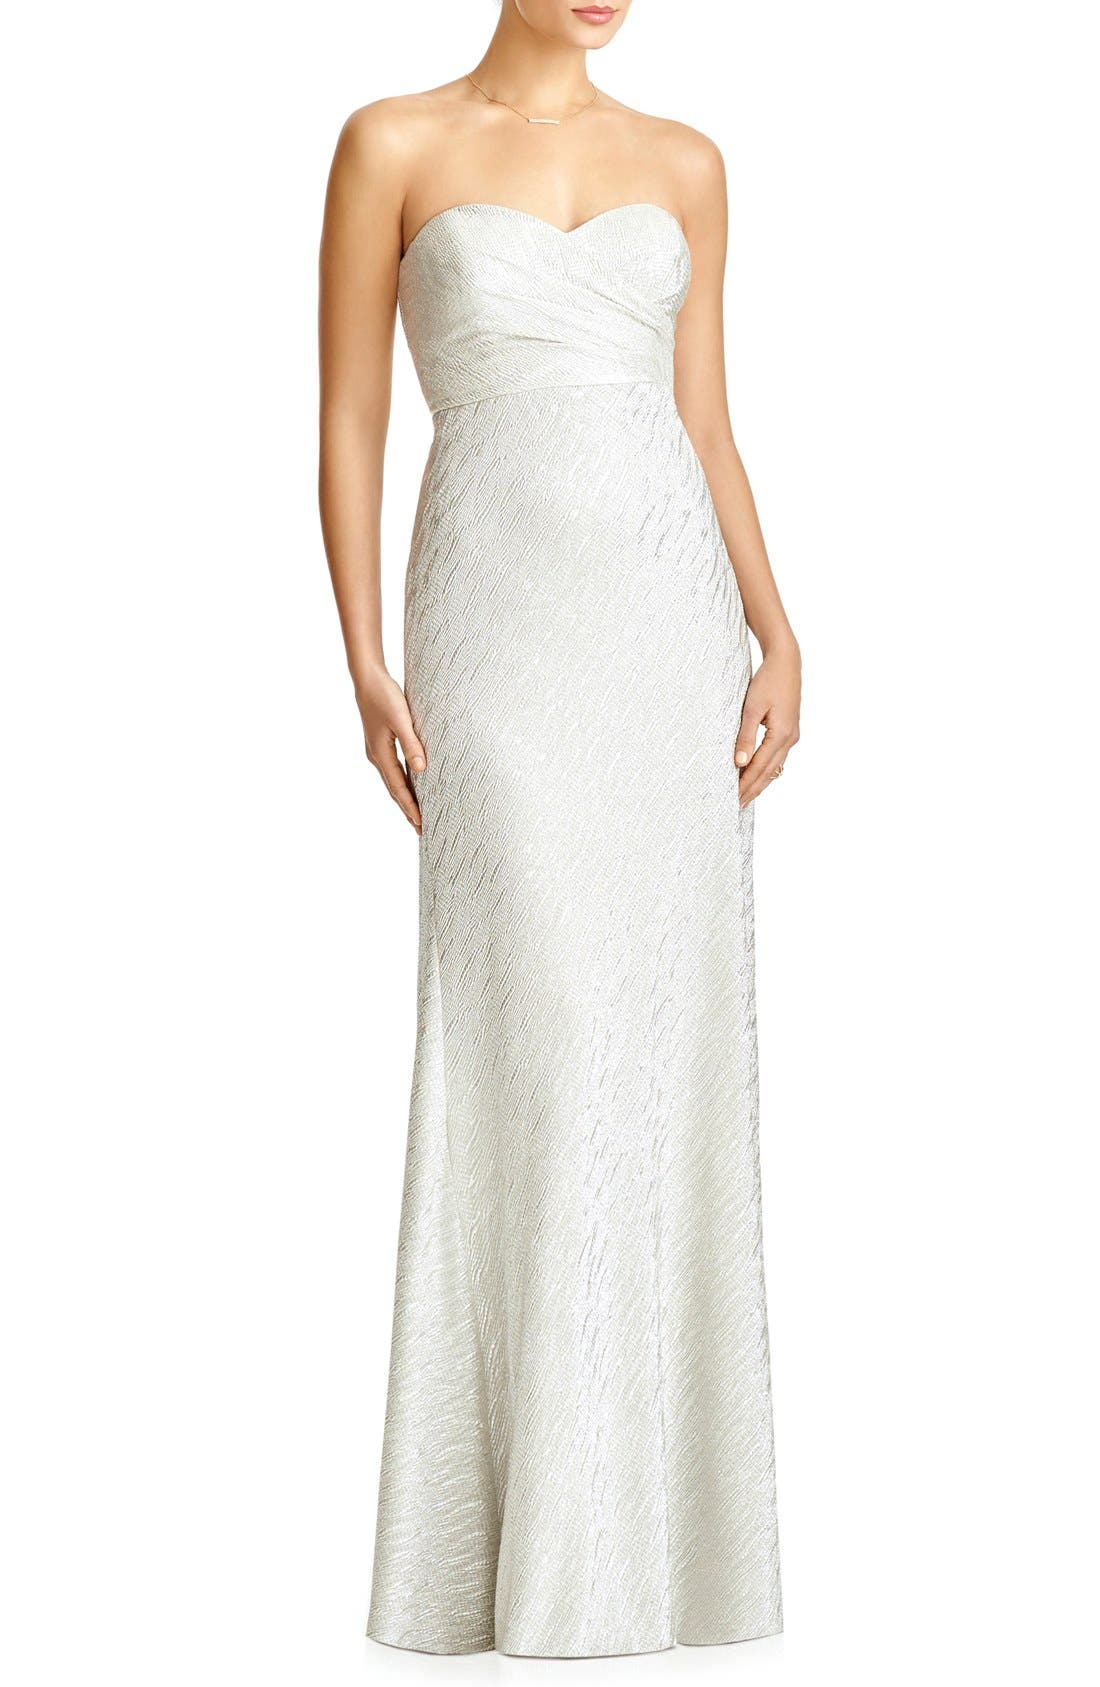 'Soho' Metallic Strapless Empire Waist Gown,                             Alternate thumbnail 3, color,                             CHAMPAGNE SILVER